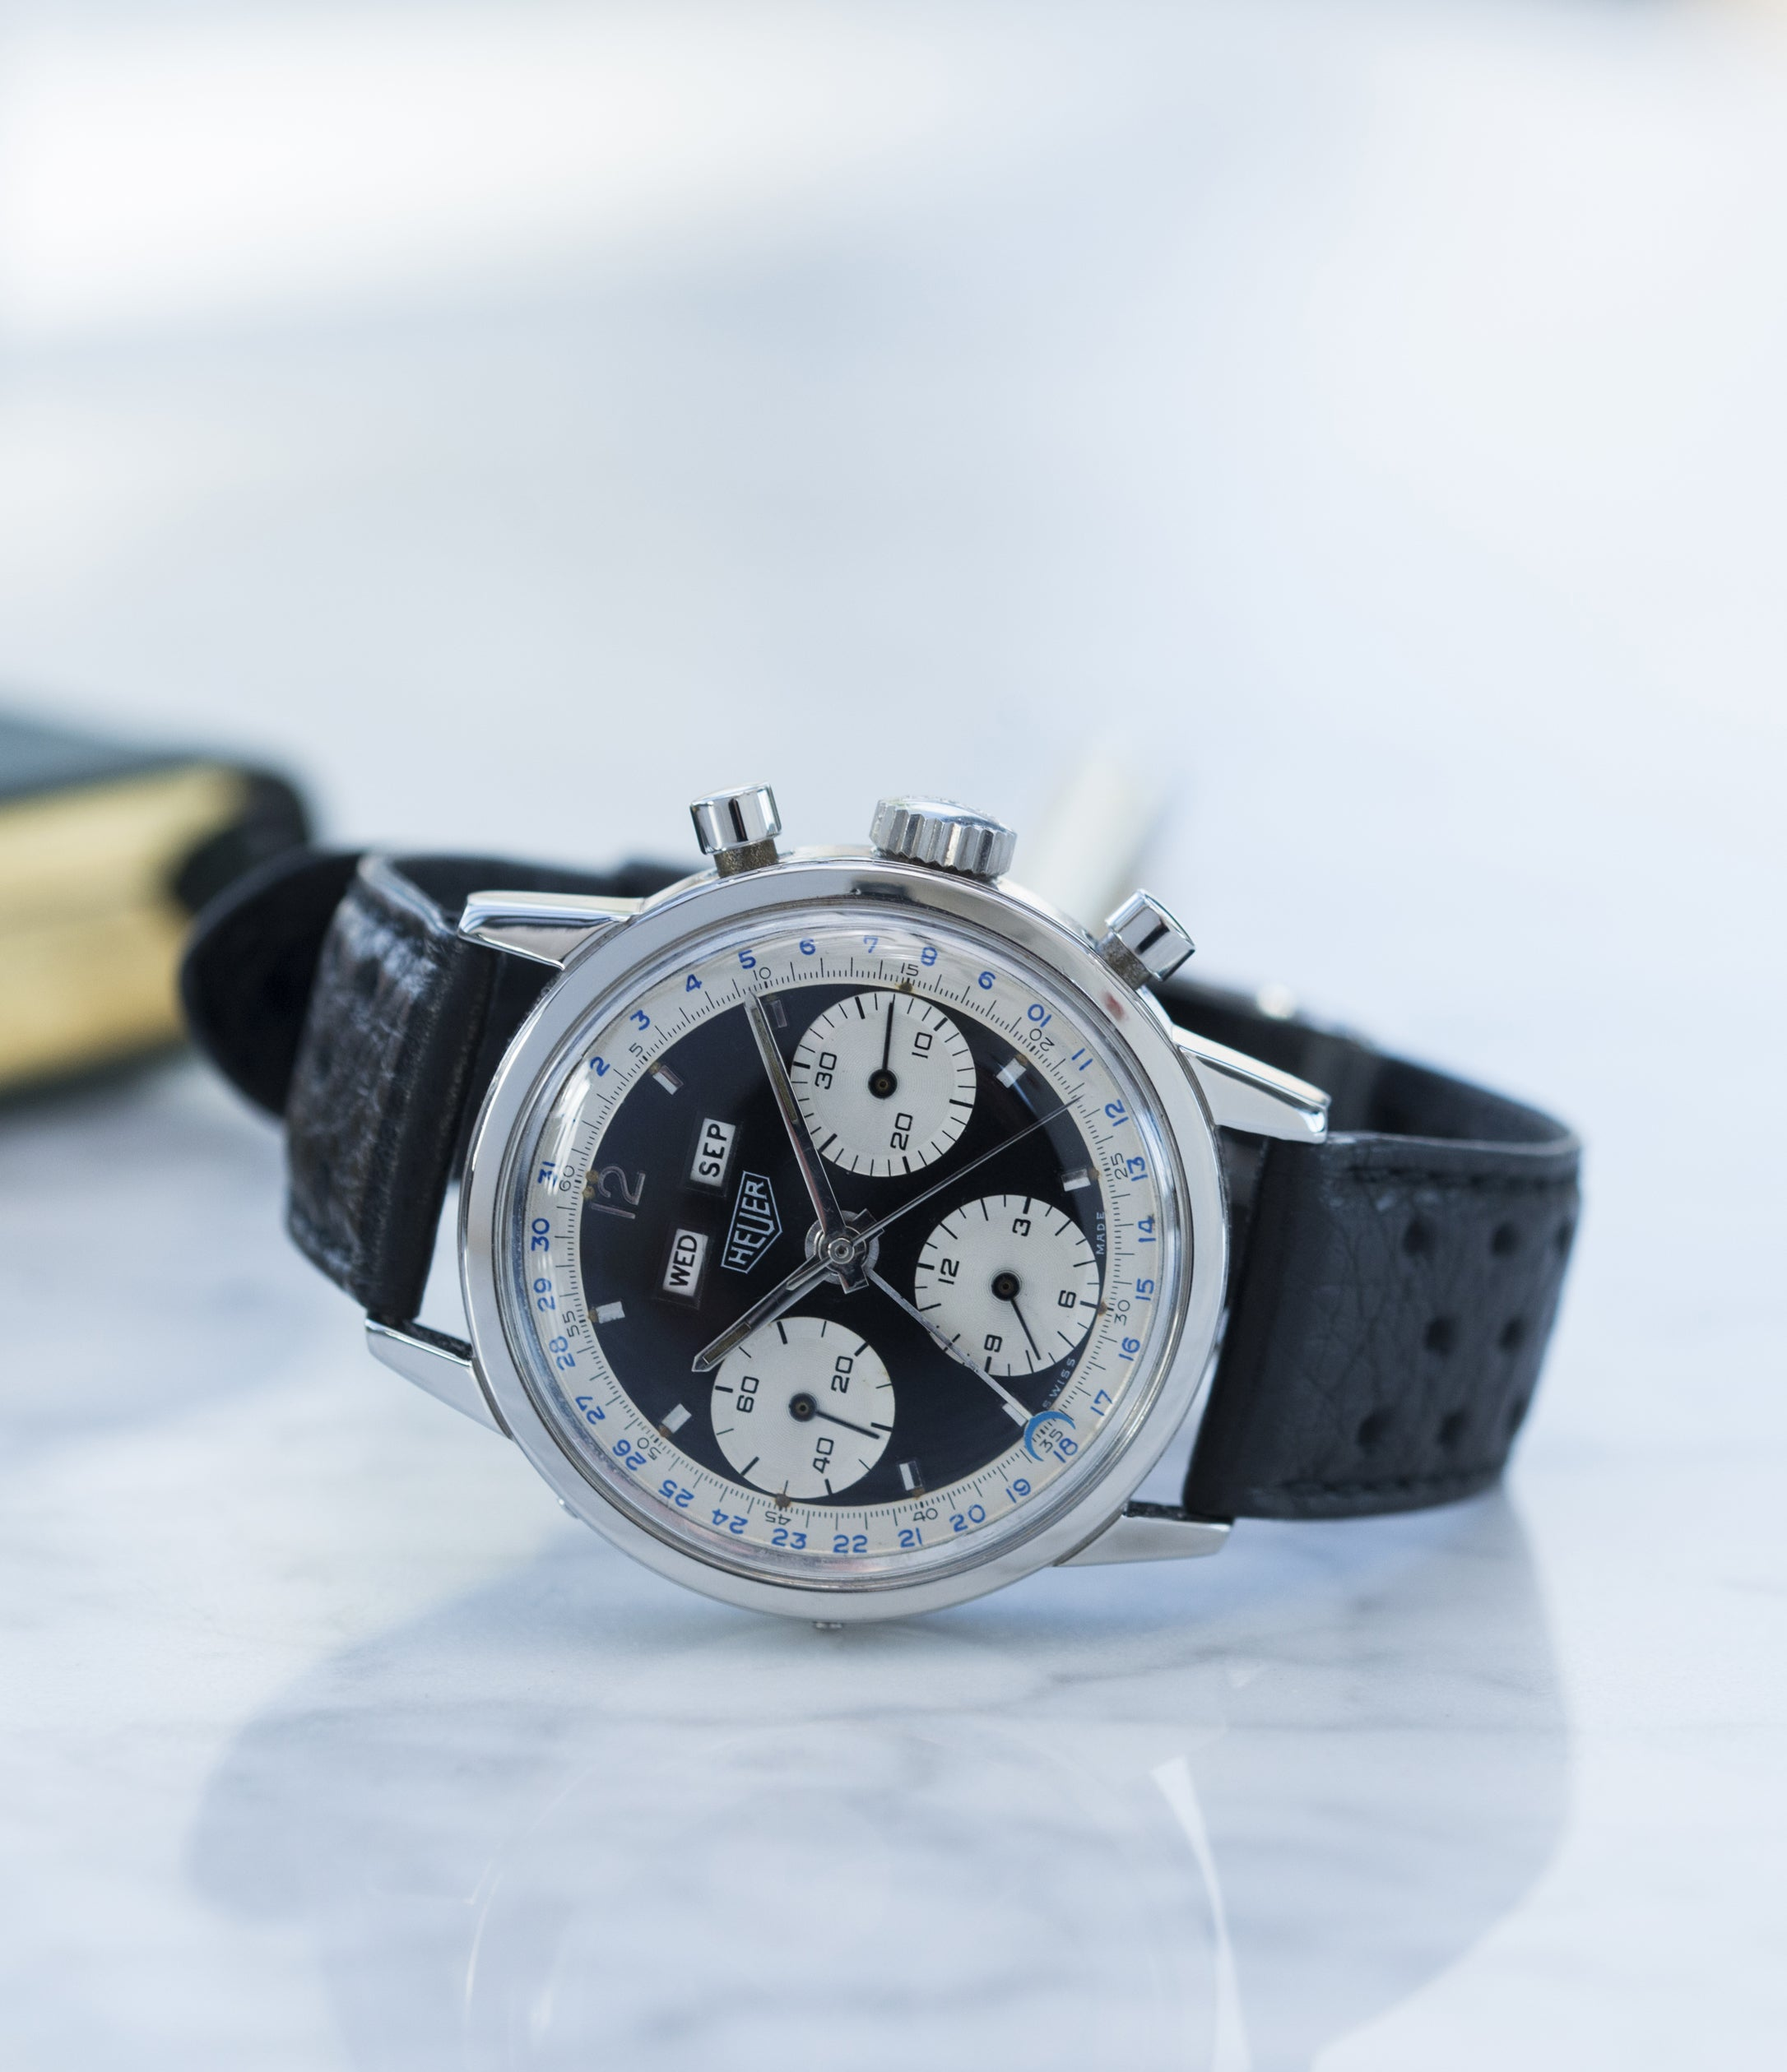 second complications series ref chronograph watches philippe patek rose perpetual collection rare grand